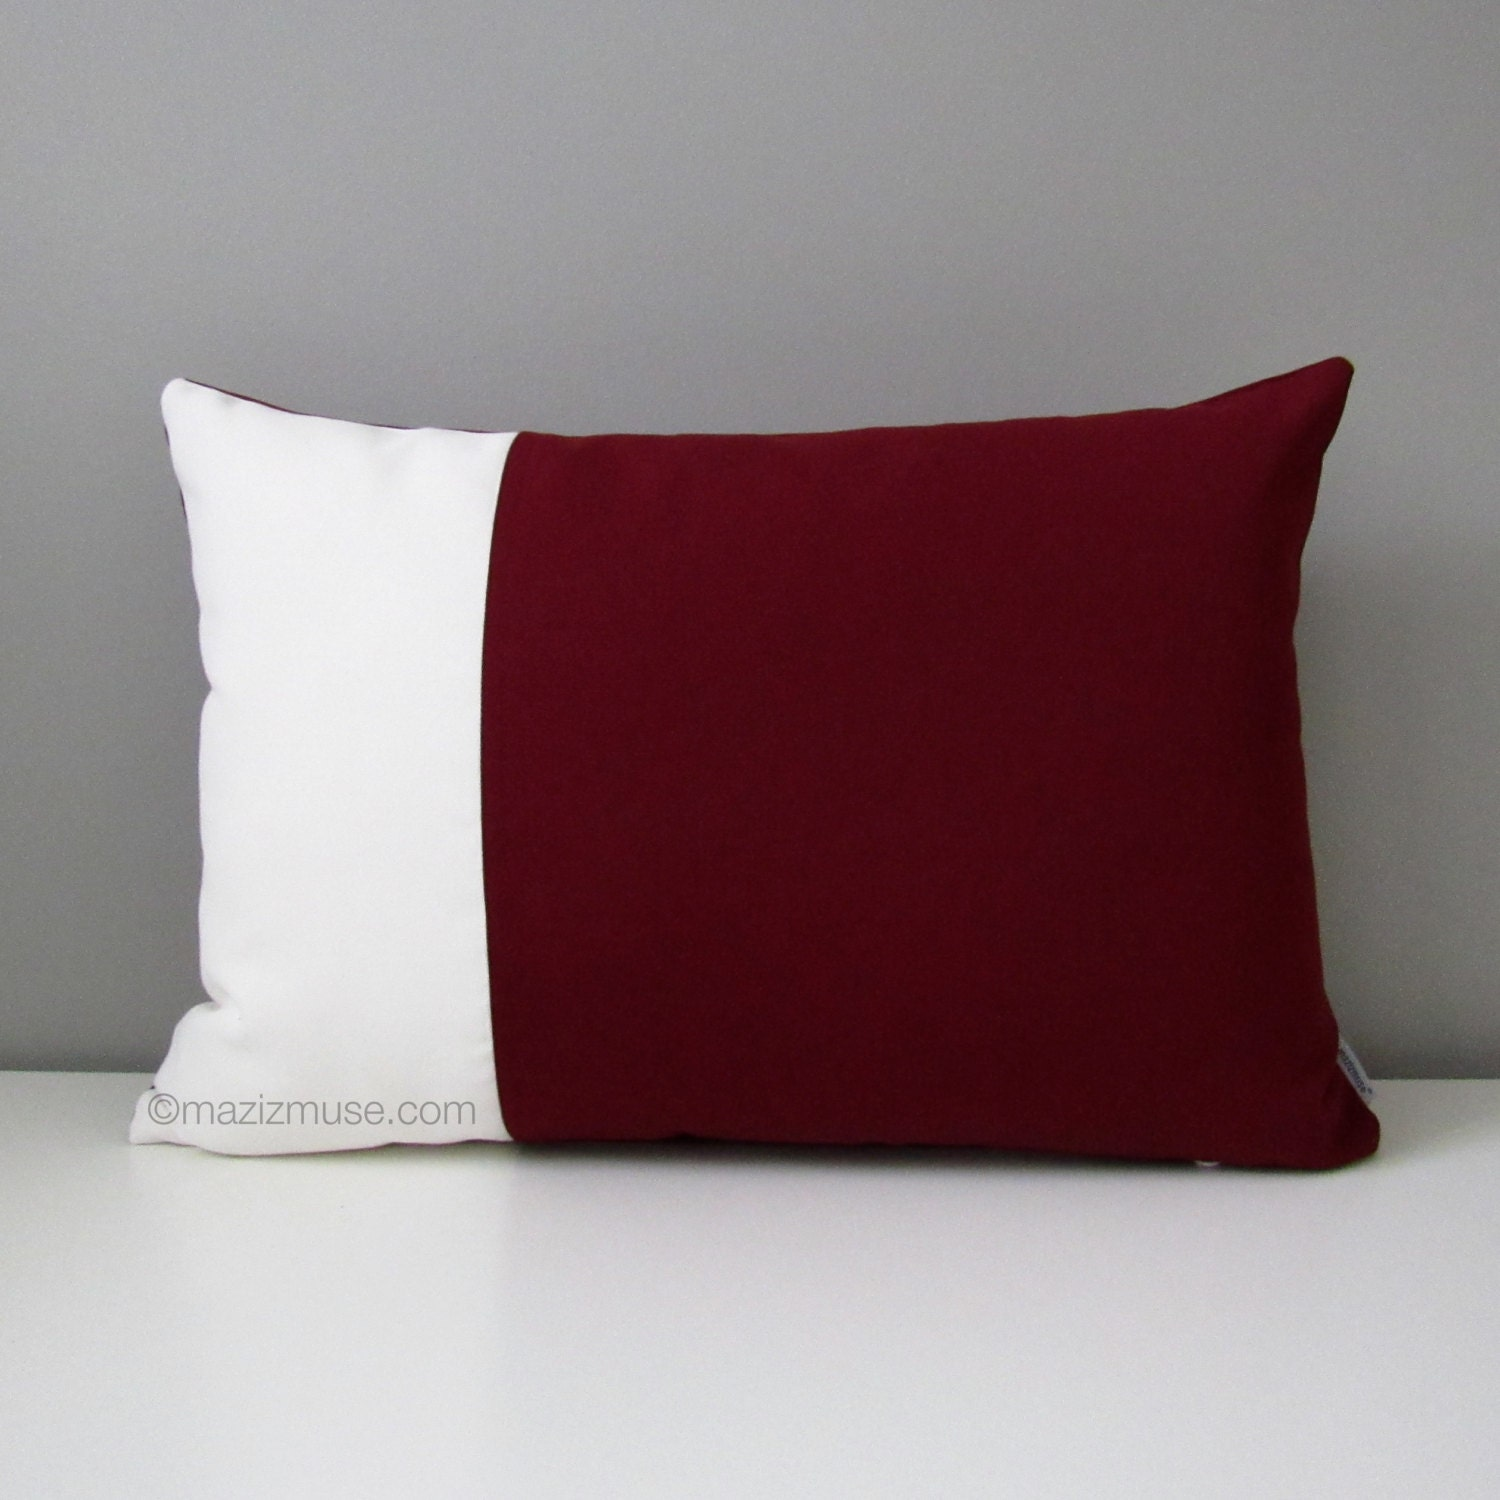 Burgundy Color Decorative Pillows : Burgundy & White Outdoor Pillow Cover Modern Color Block